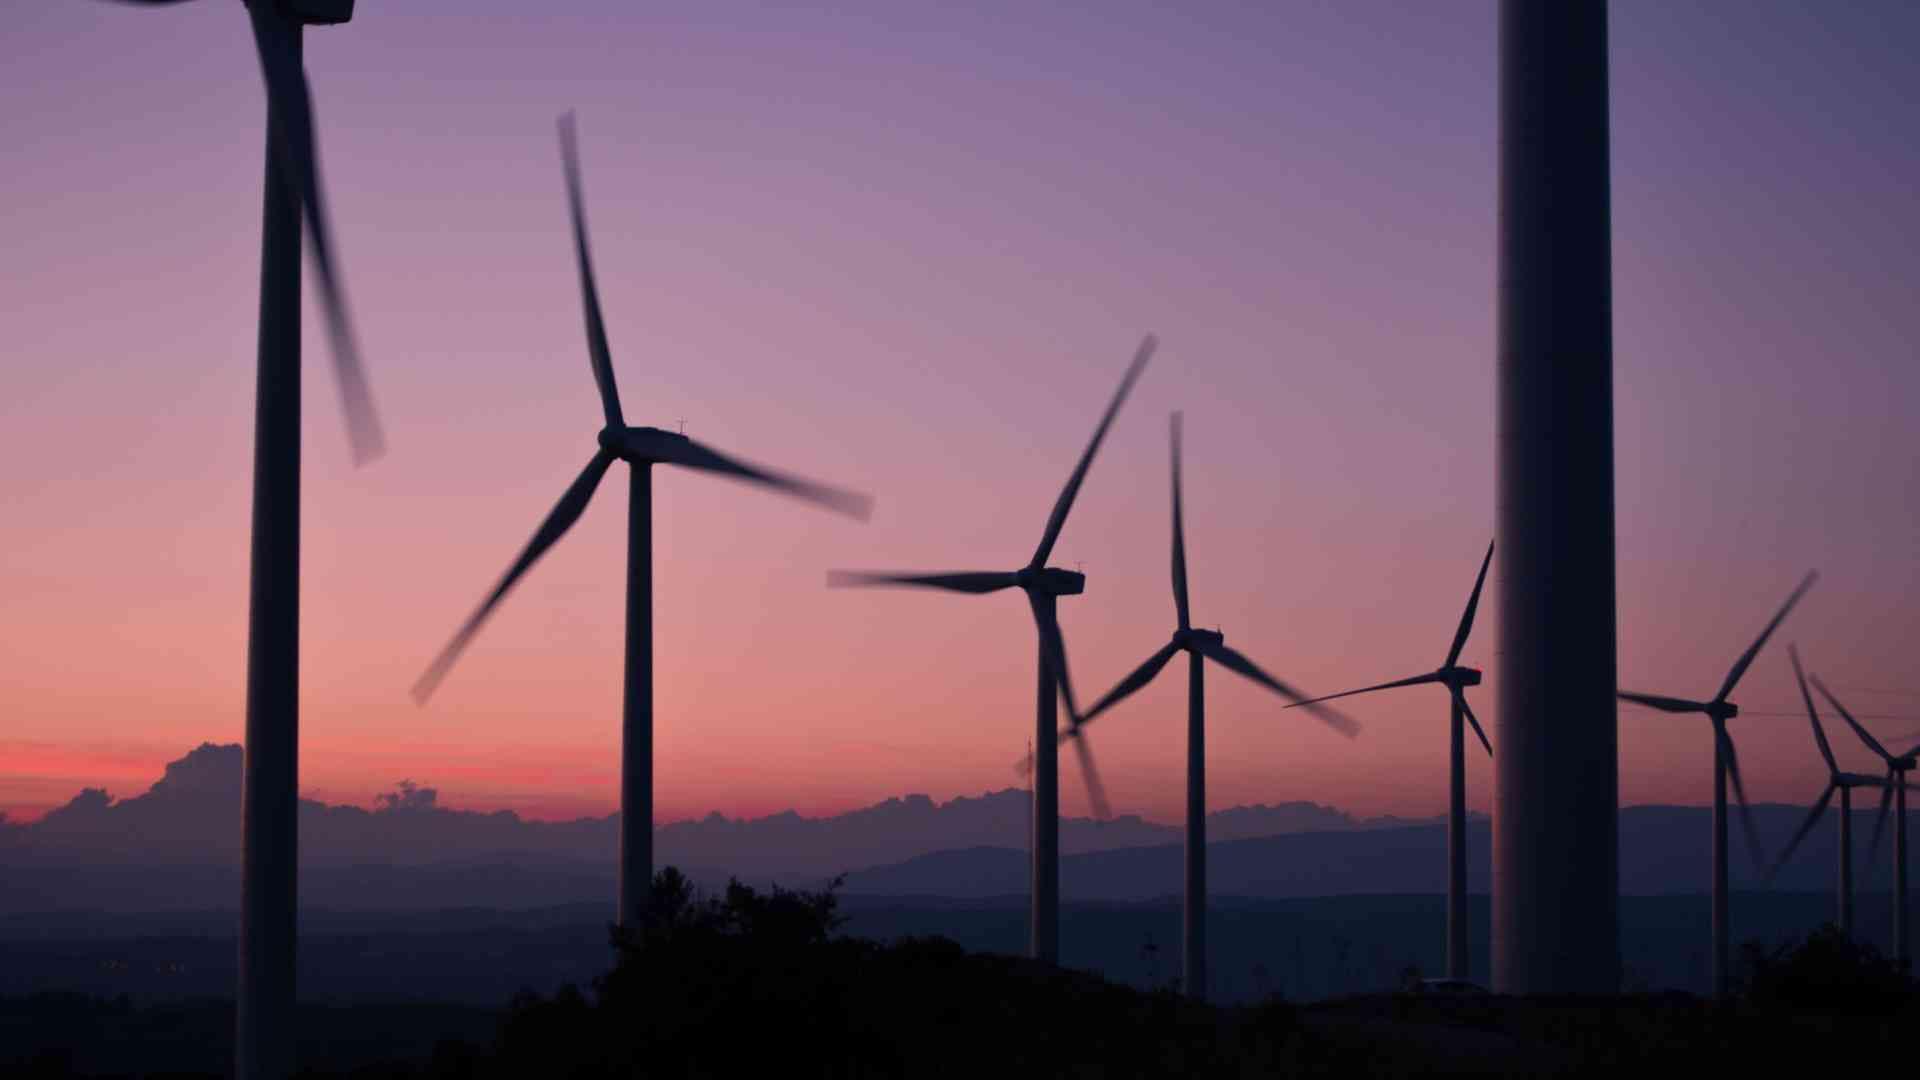 Wind farm with sunset in background